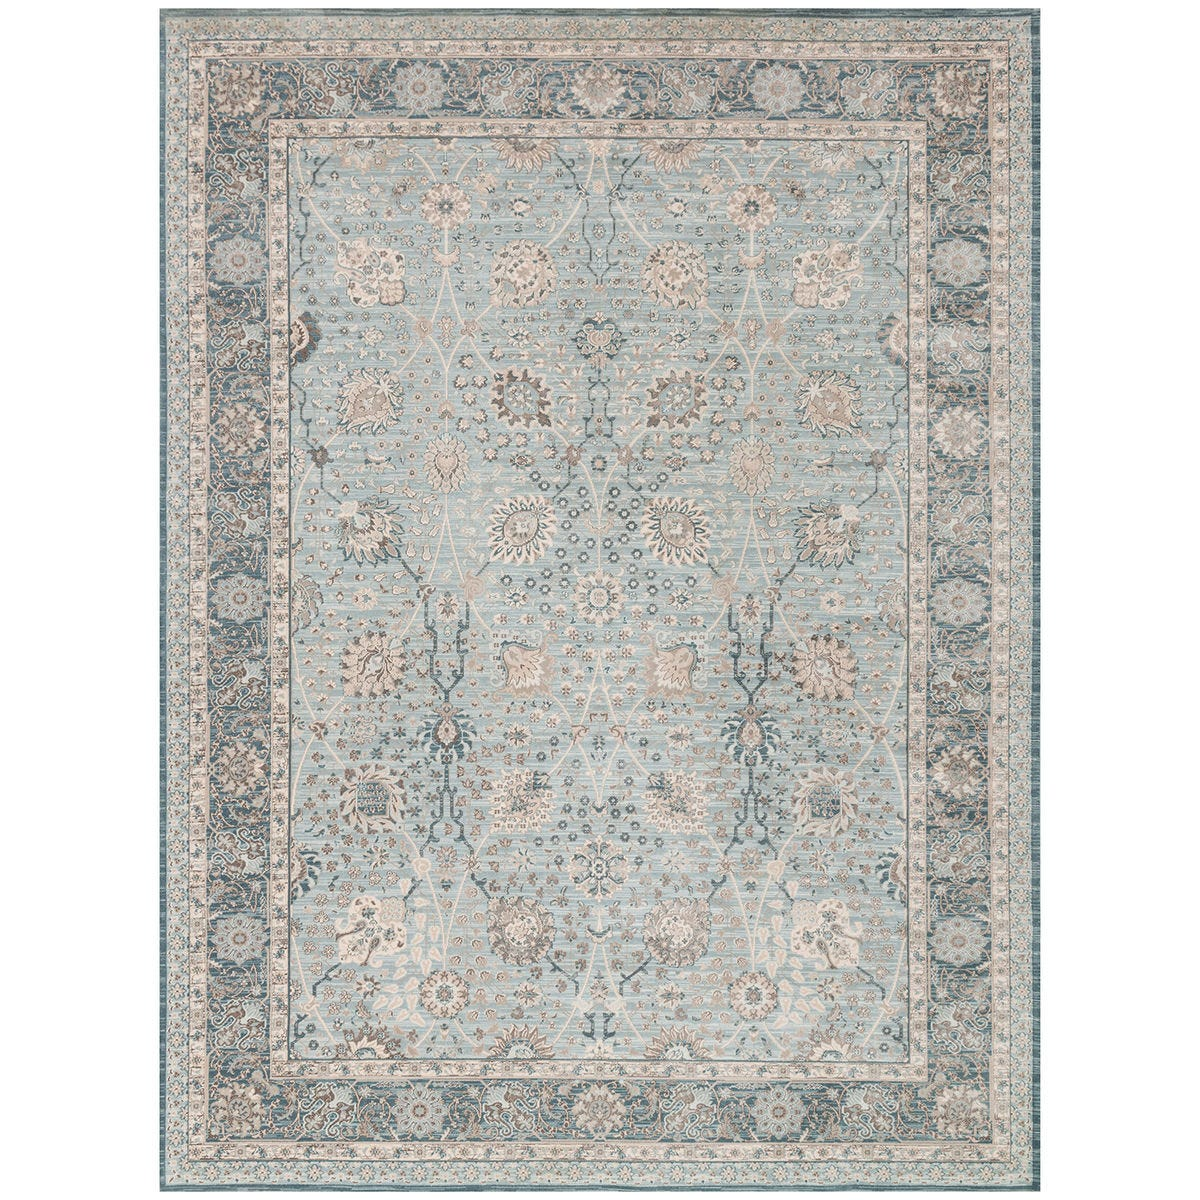 Joanna gaines pier 1 new collection rugs pillows Pier one rugs